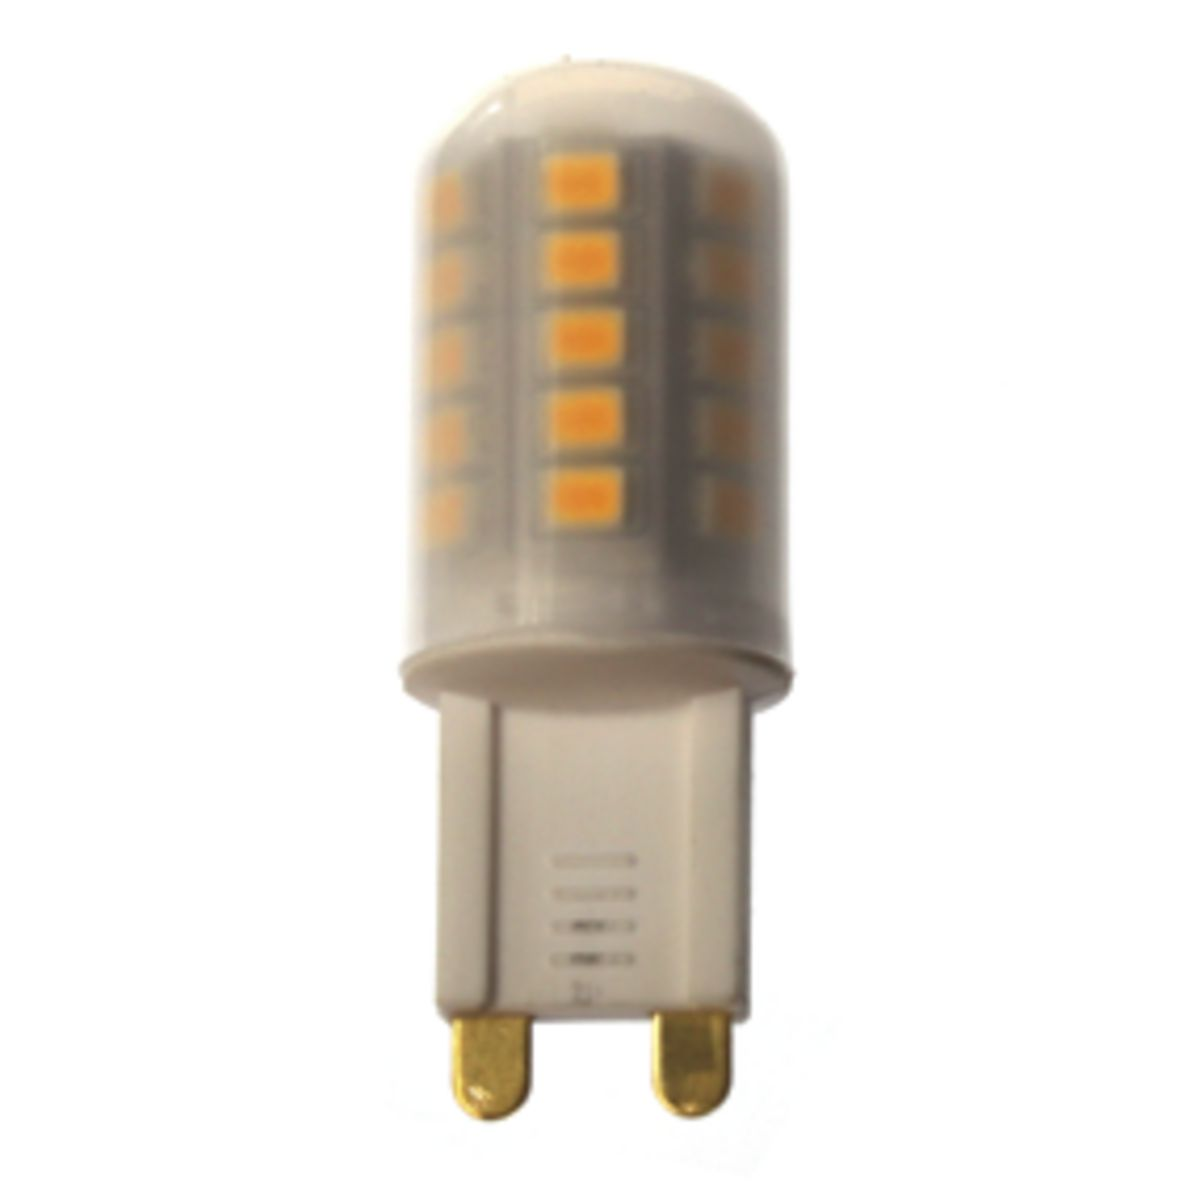 3W LED G9 LAMP 108072 Unfinished